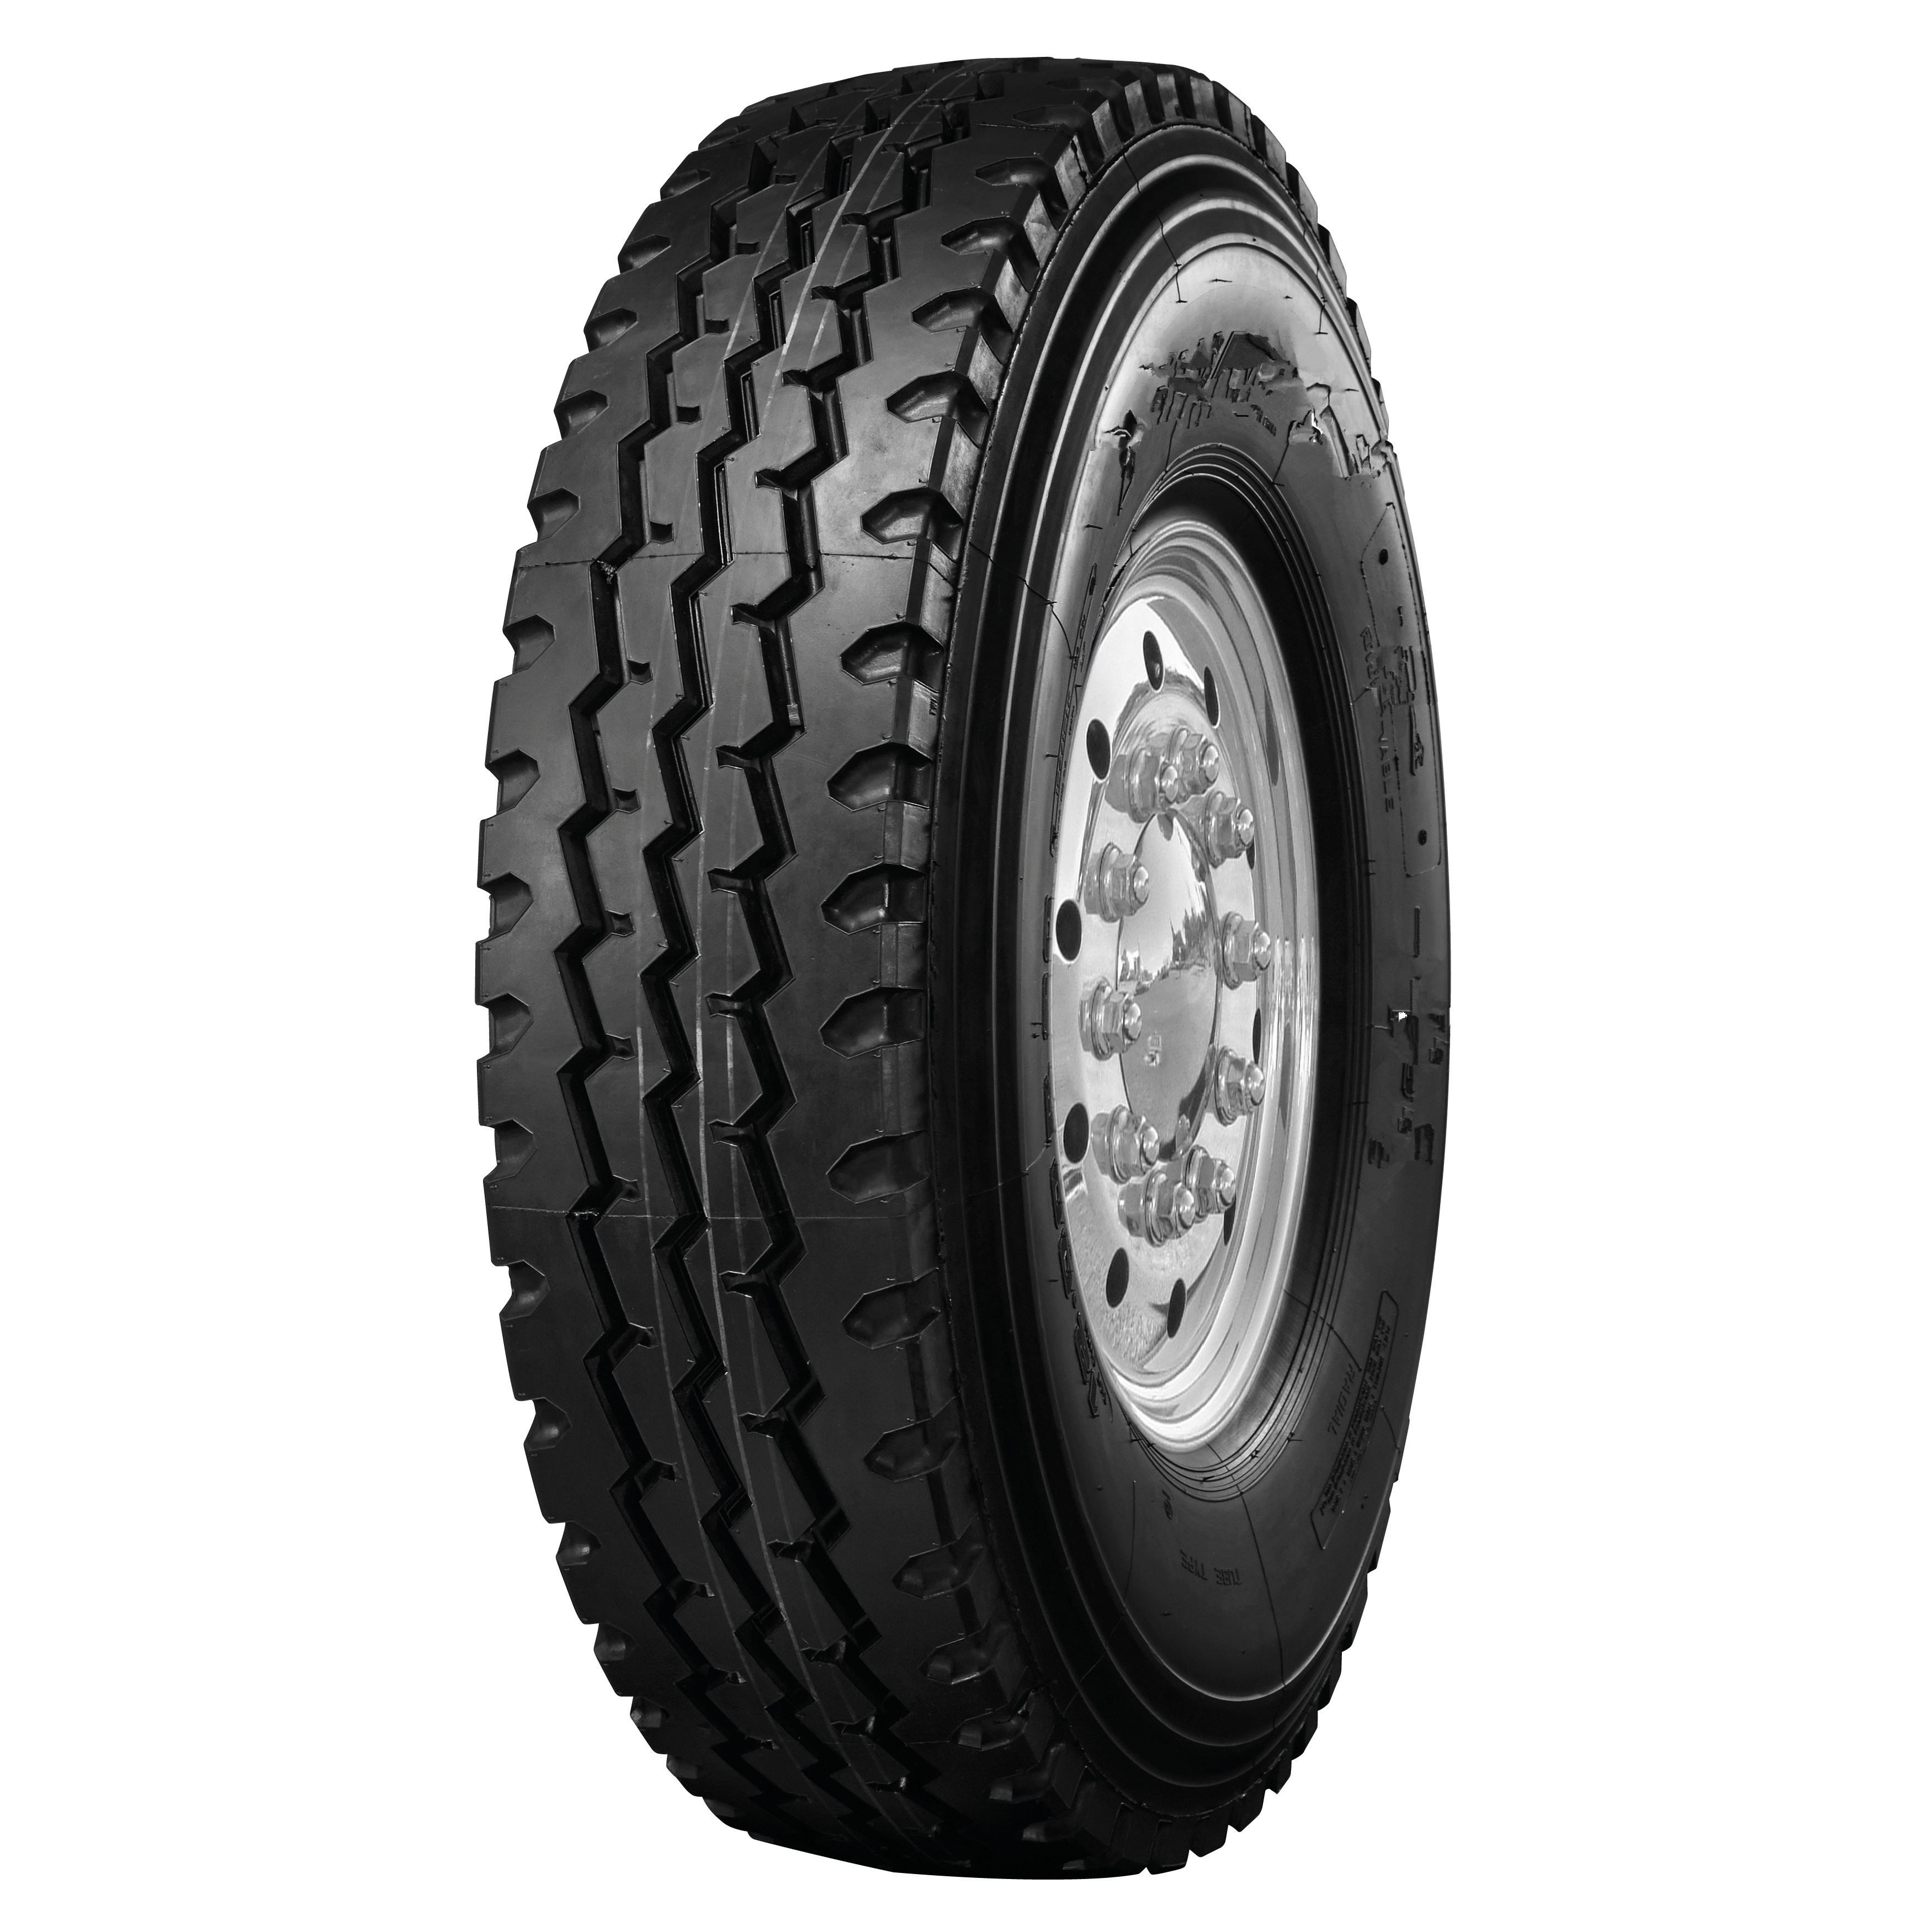 HIGH QUALITY DUMP TRUCK TYRE 315/80R22.5 11R22.5 TR668 TRIANGLE TYRE TIRE